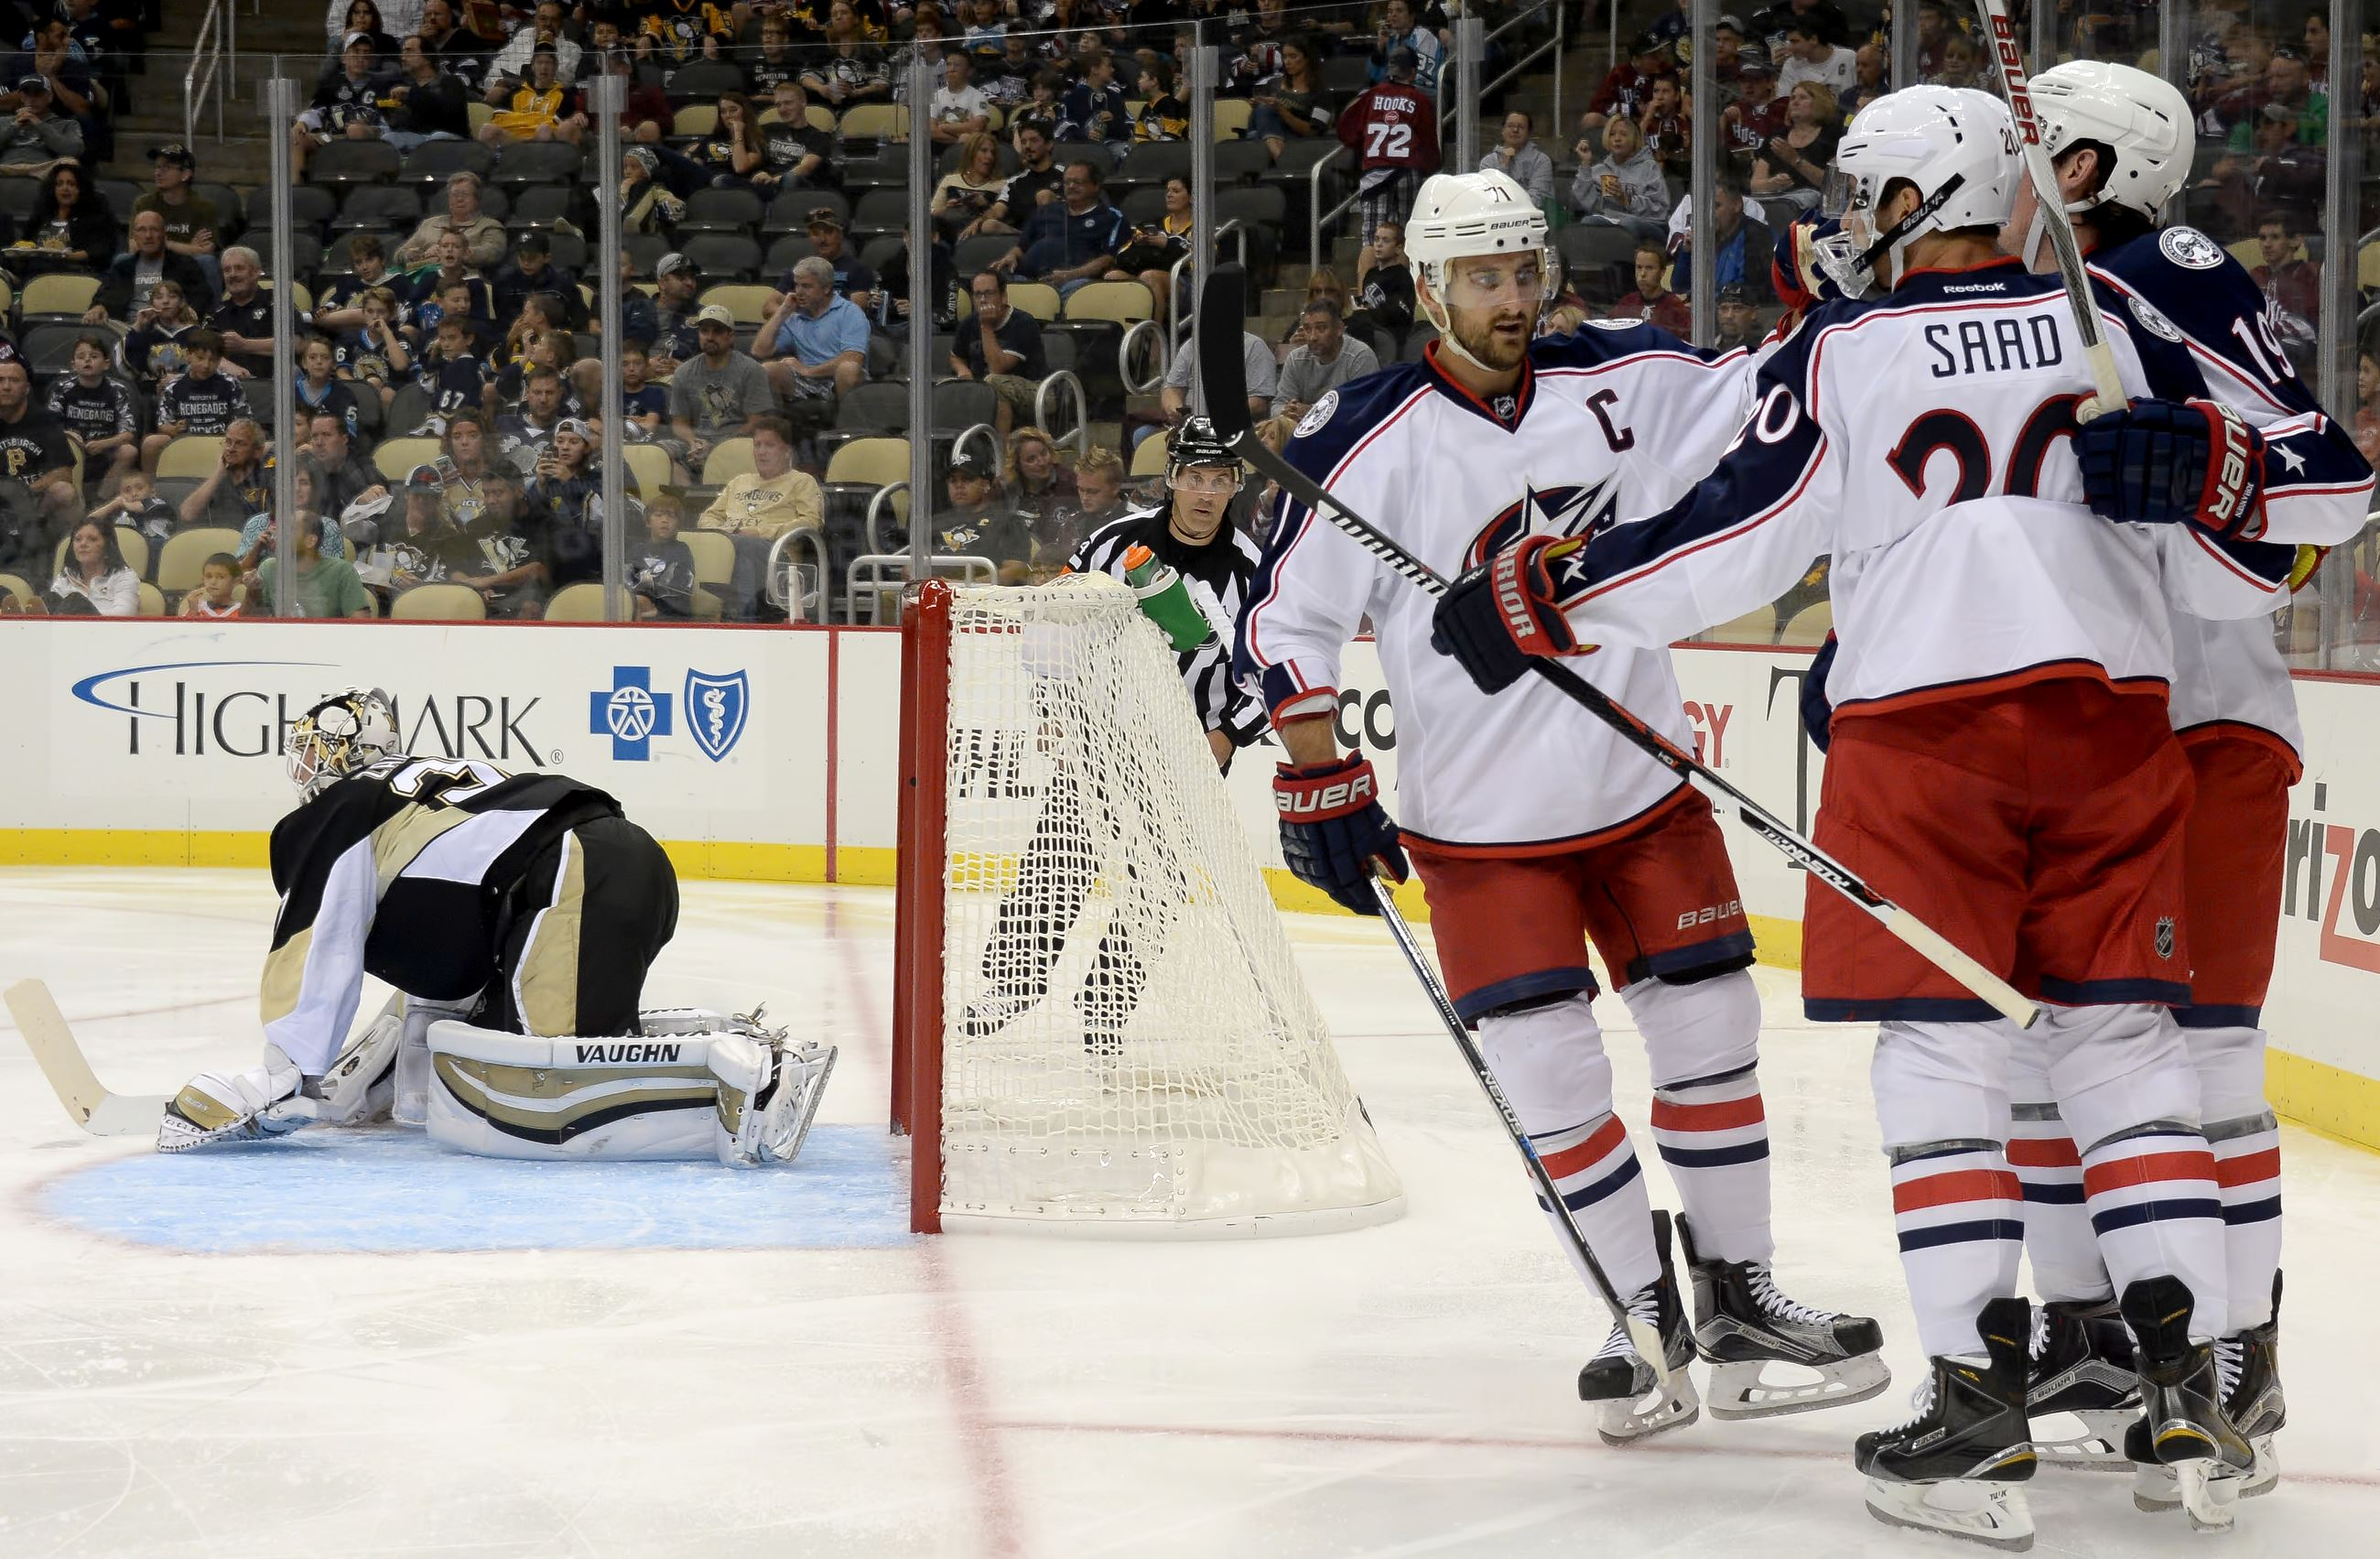 Penguins lose to Blue Jackets 4-2 in preseason game at Consol